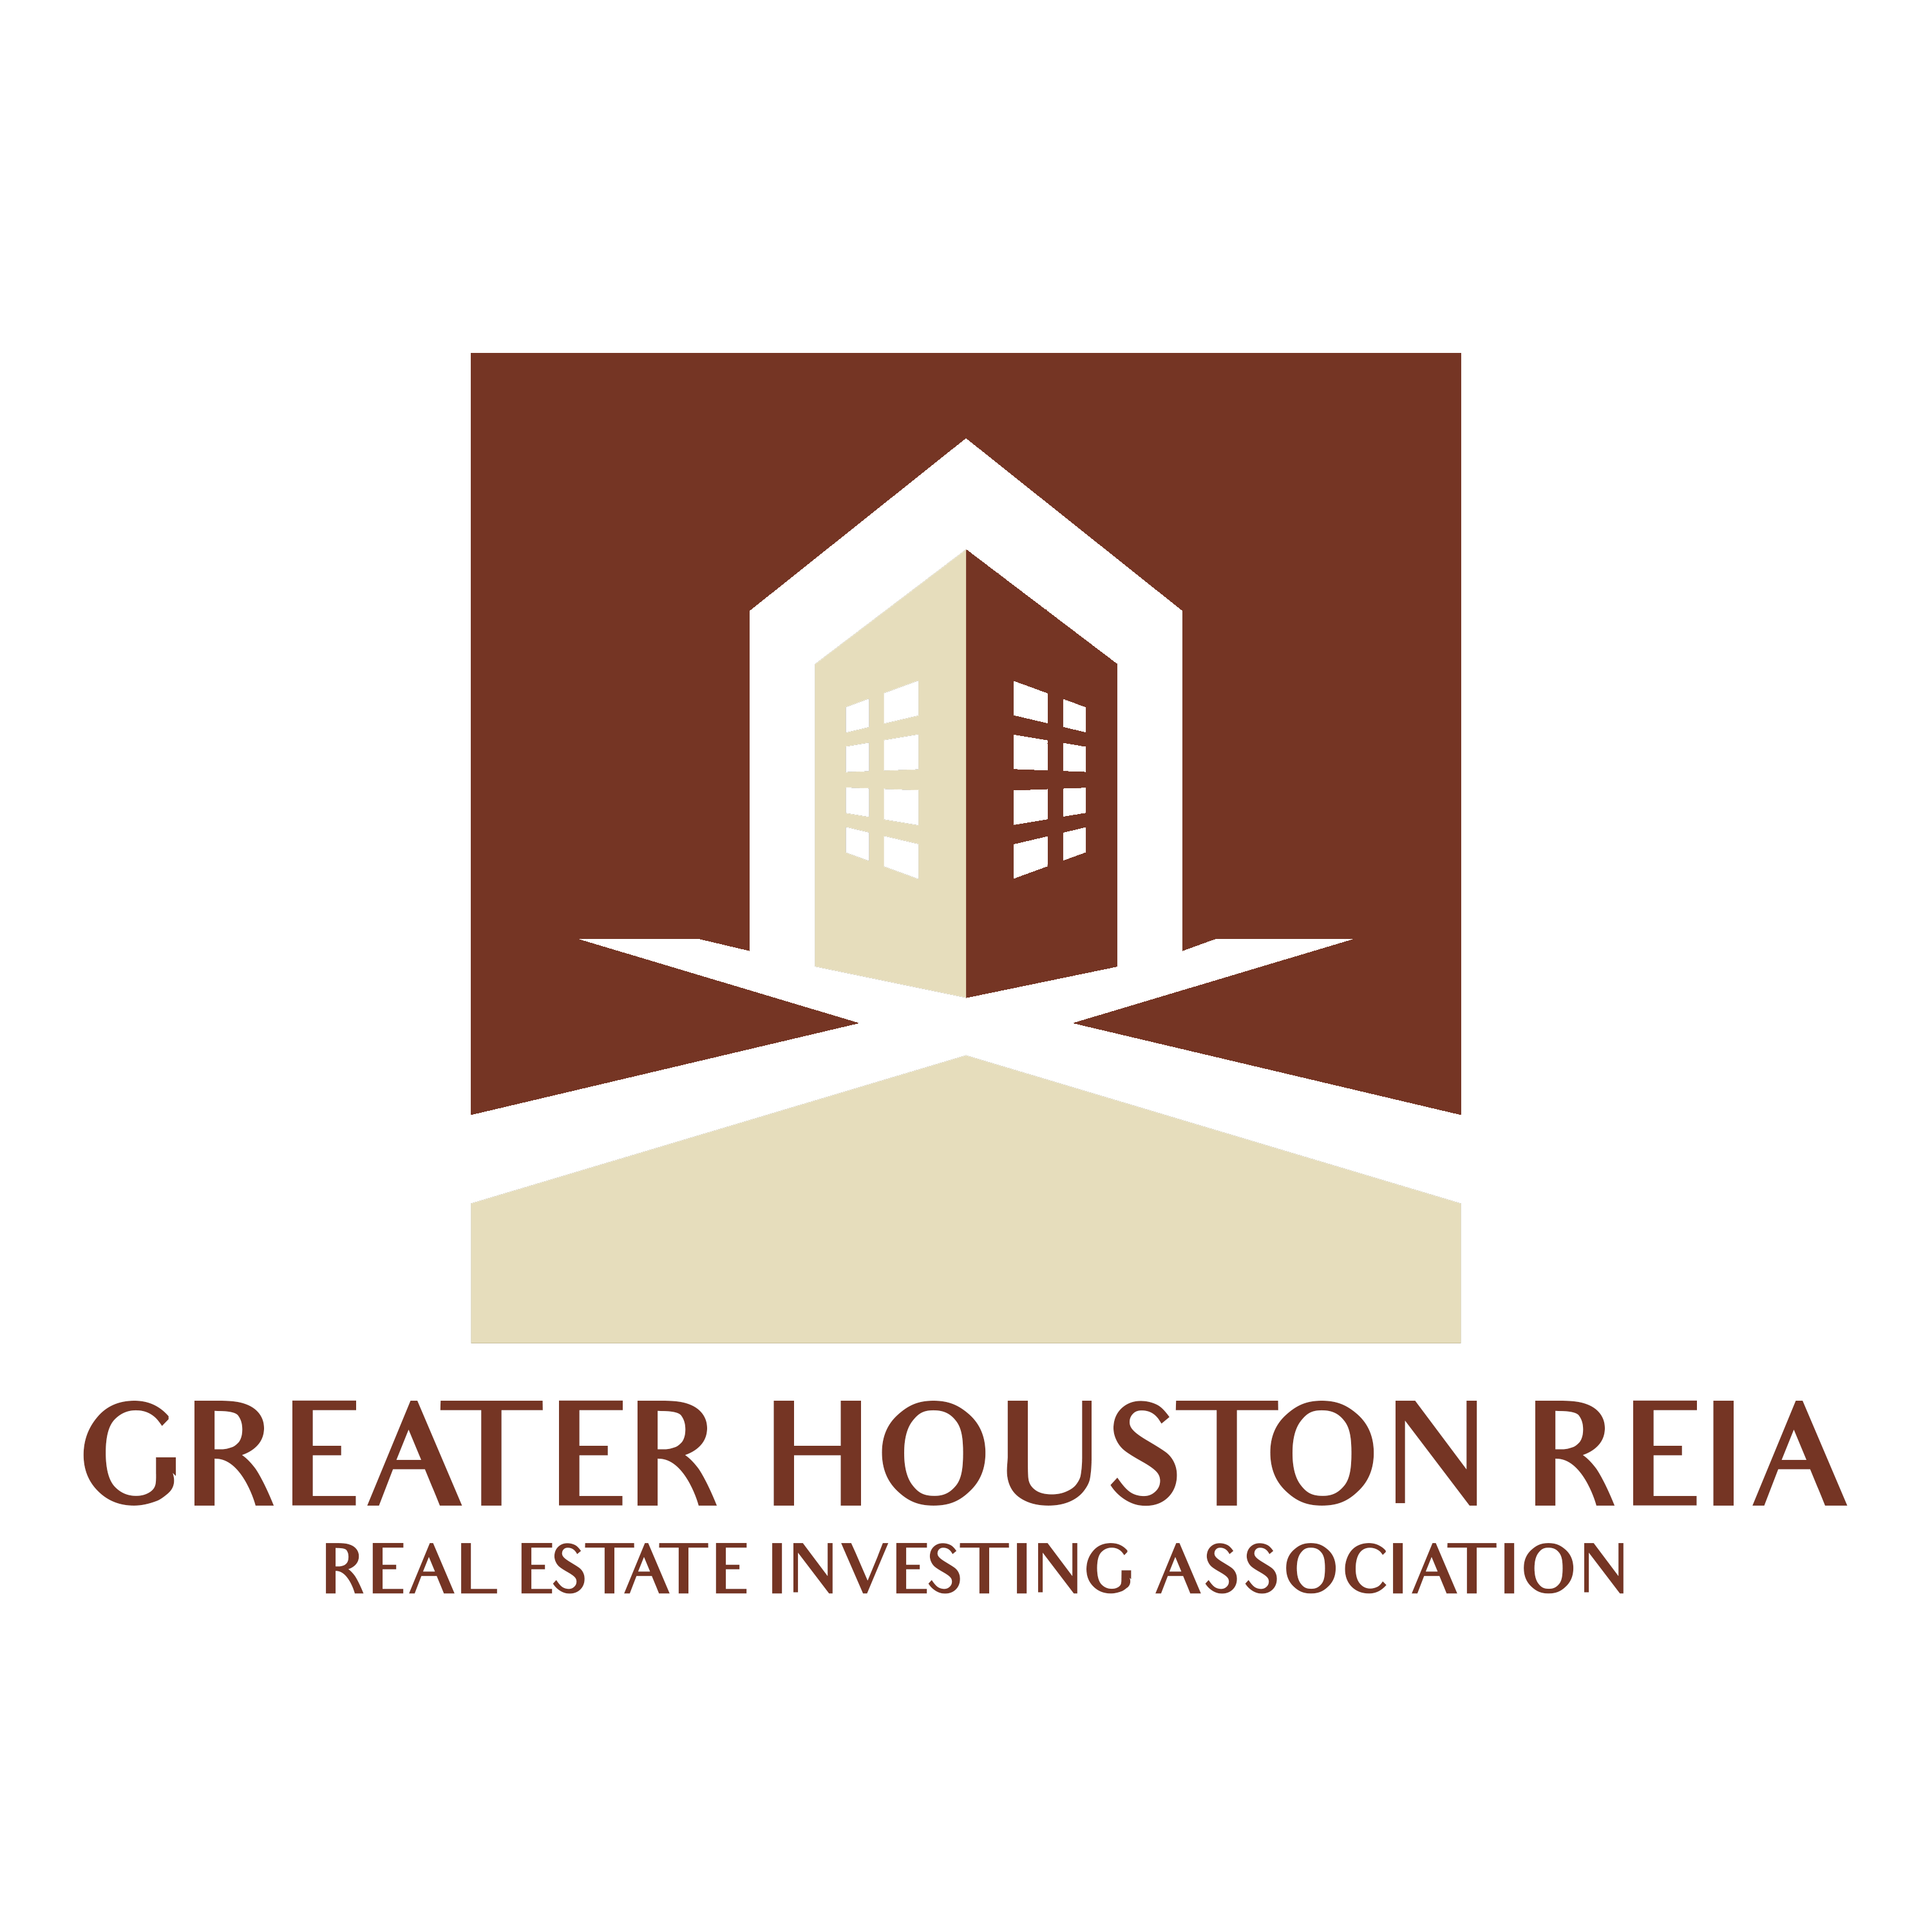 Greater Houston REIA